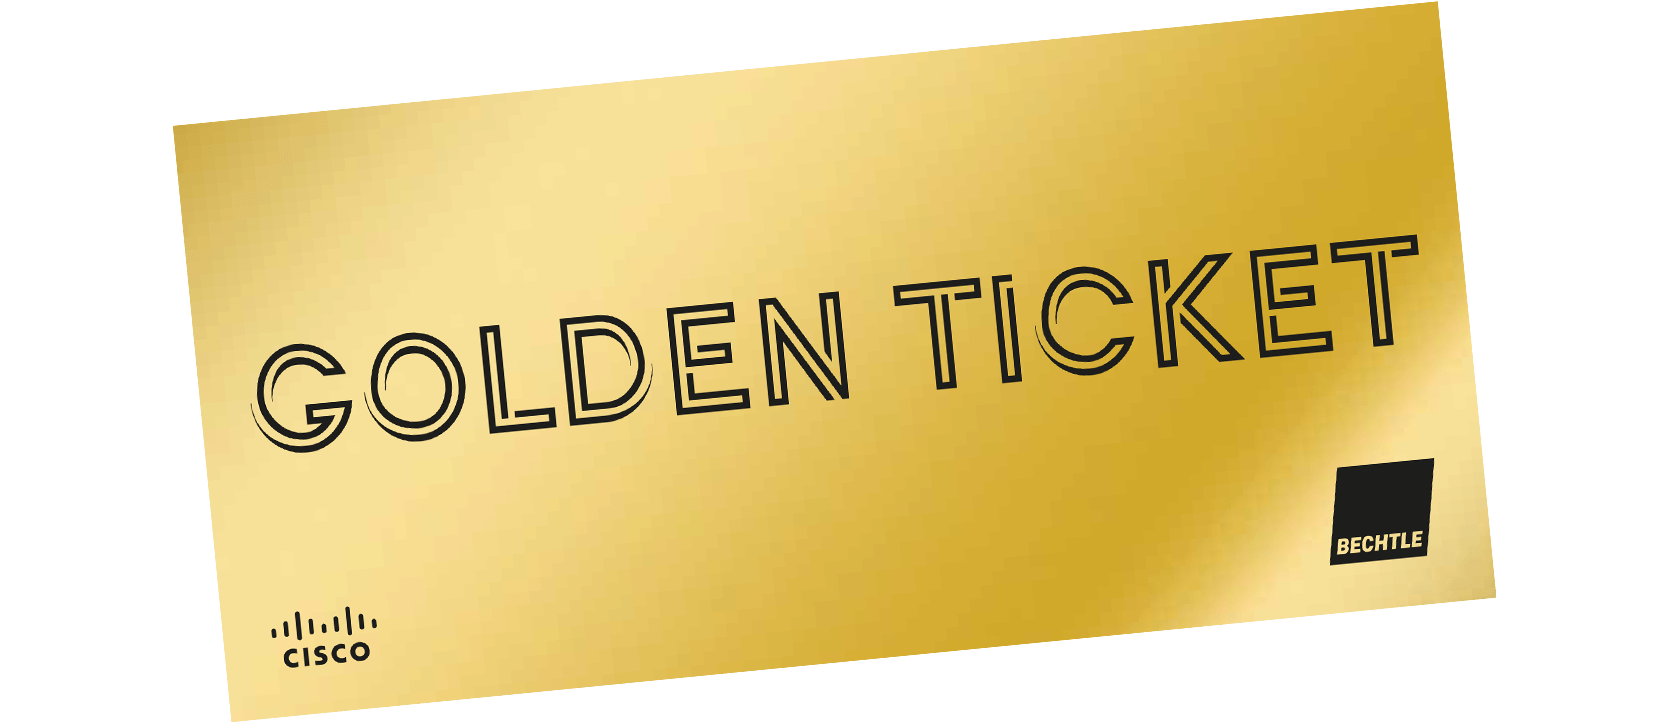 goldenticket.png